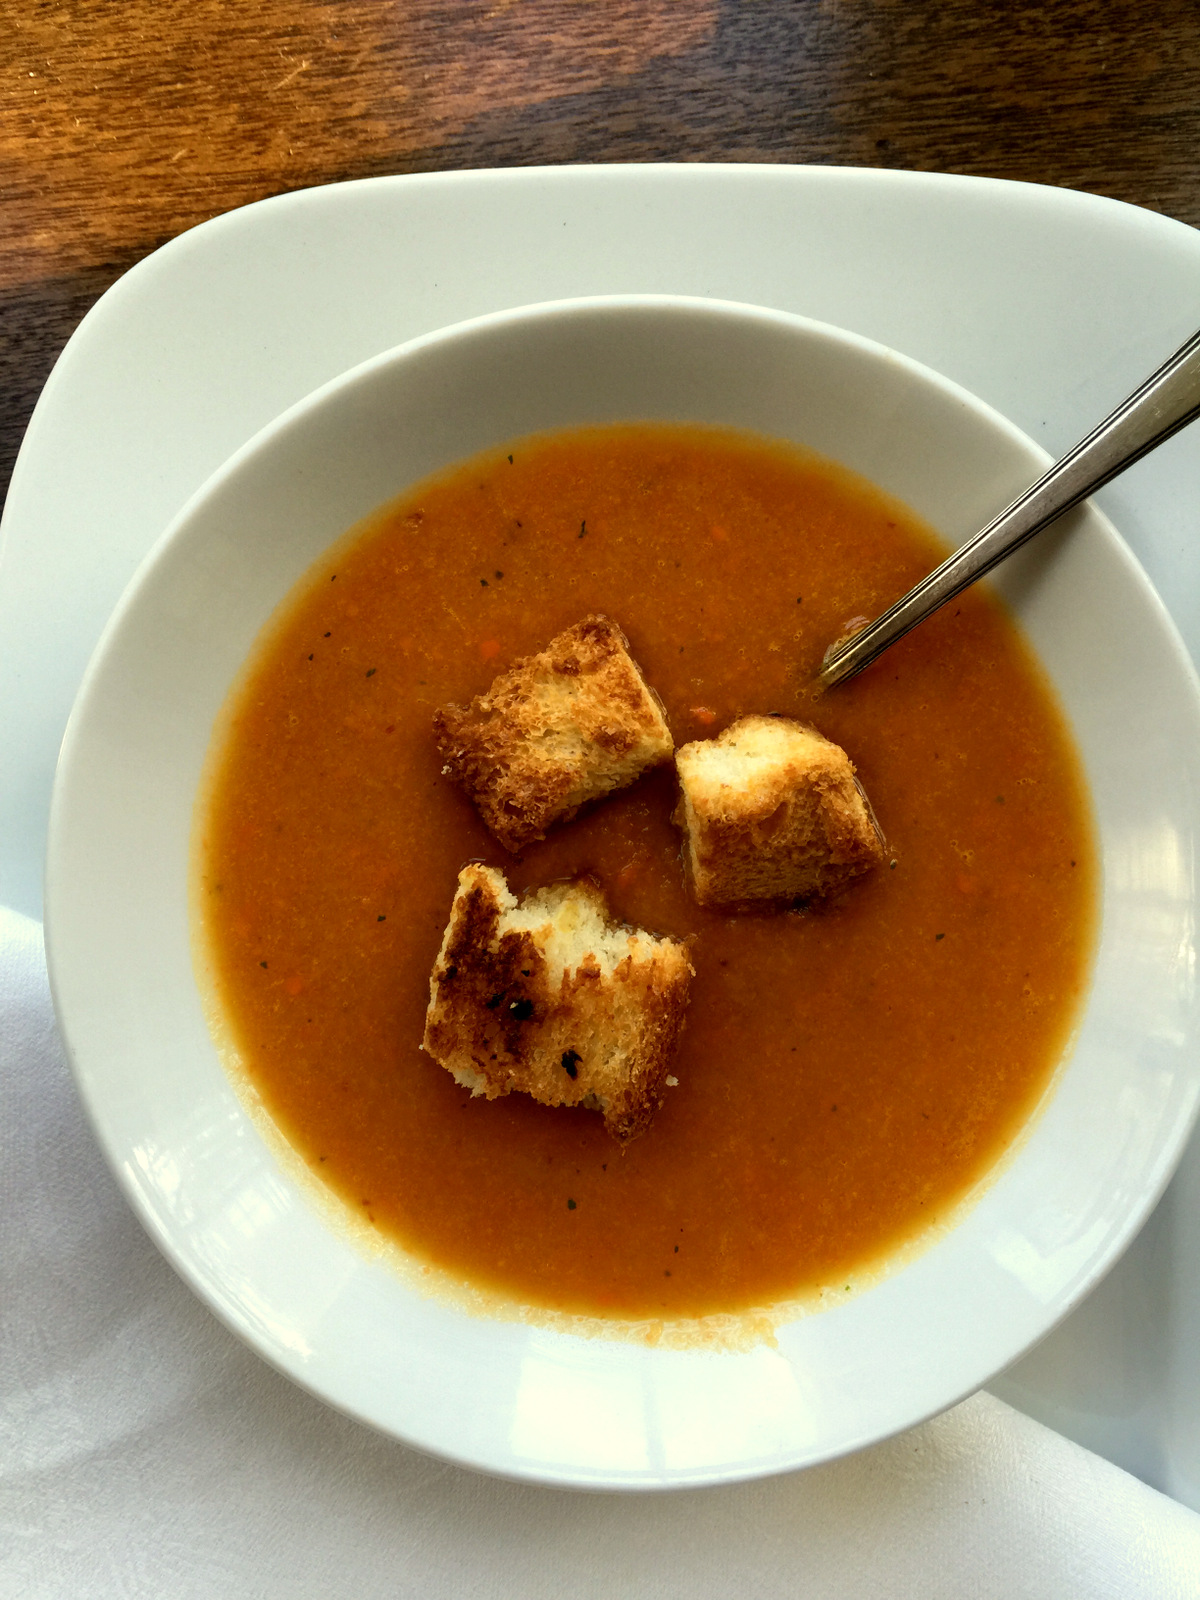 Roasted Root Vegetable Soup with Parmesan Croutons from Katie Workman/ themom100.com